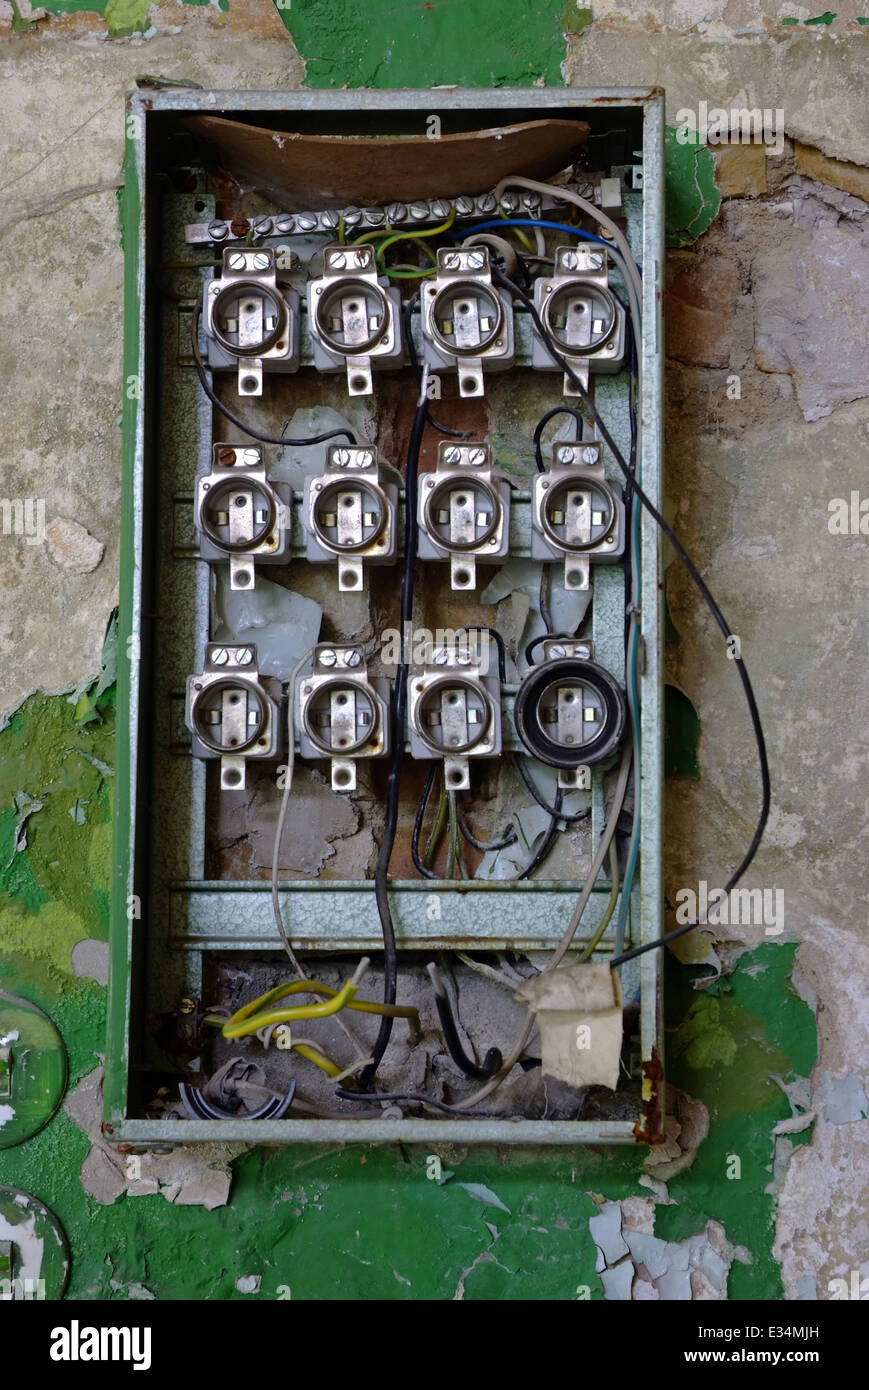 hight resolution of old fuse box in an abandoned house